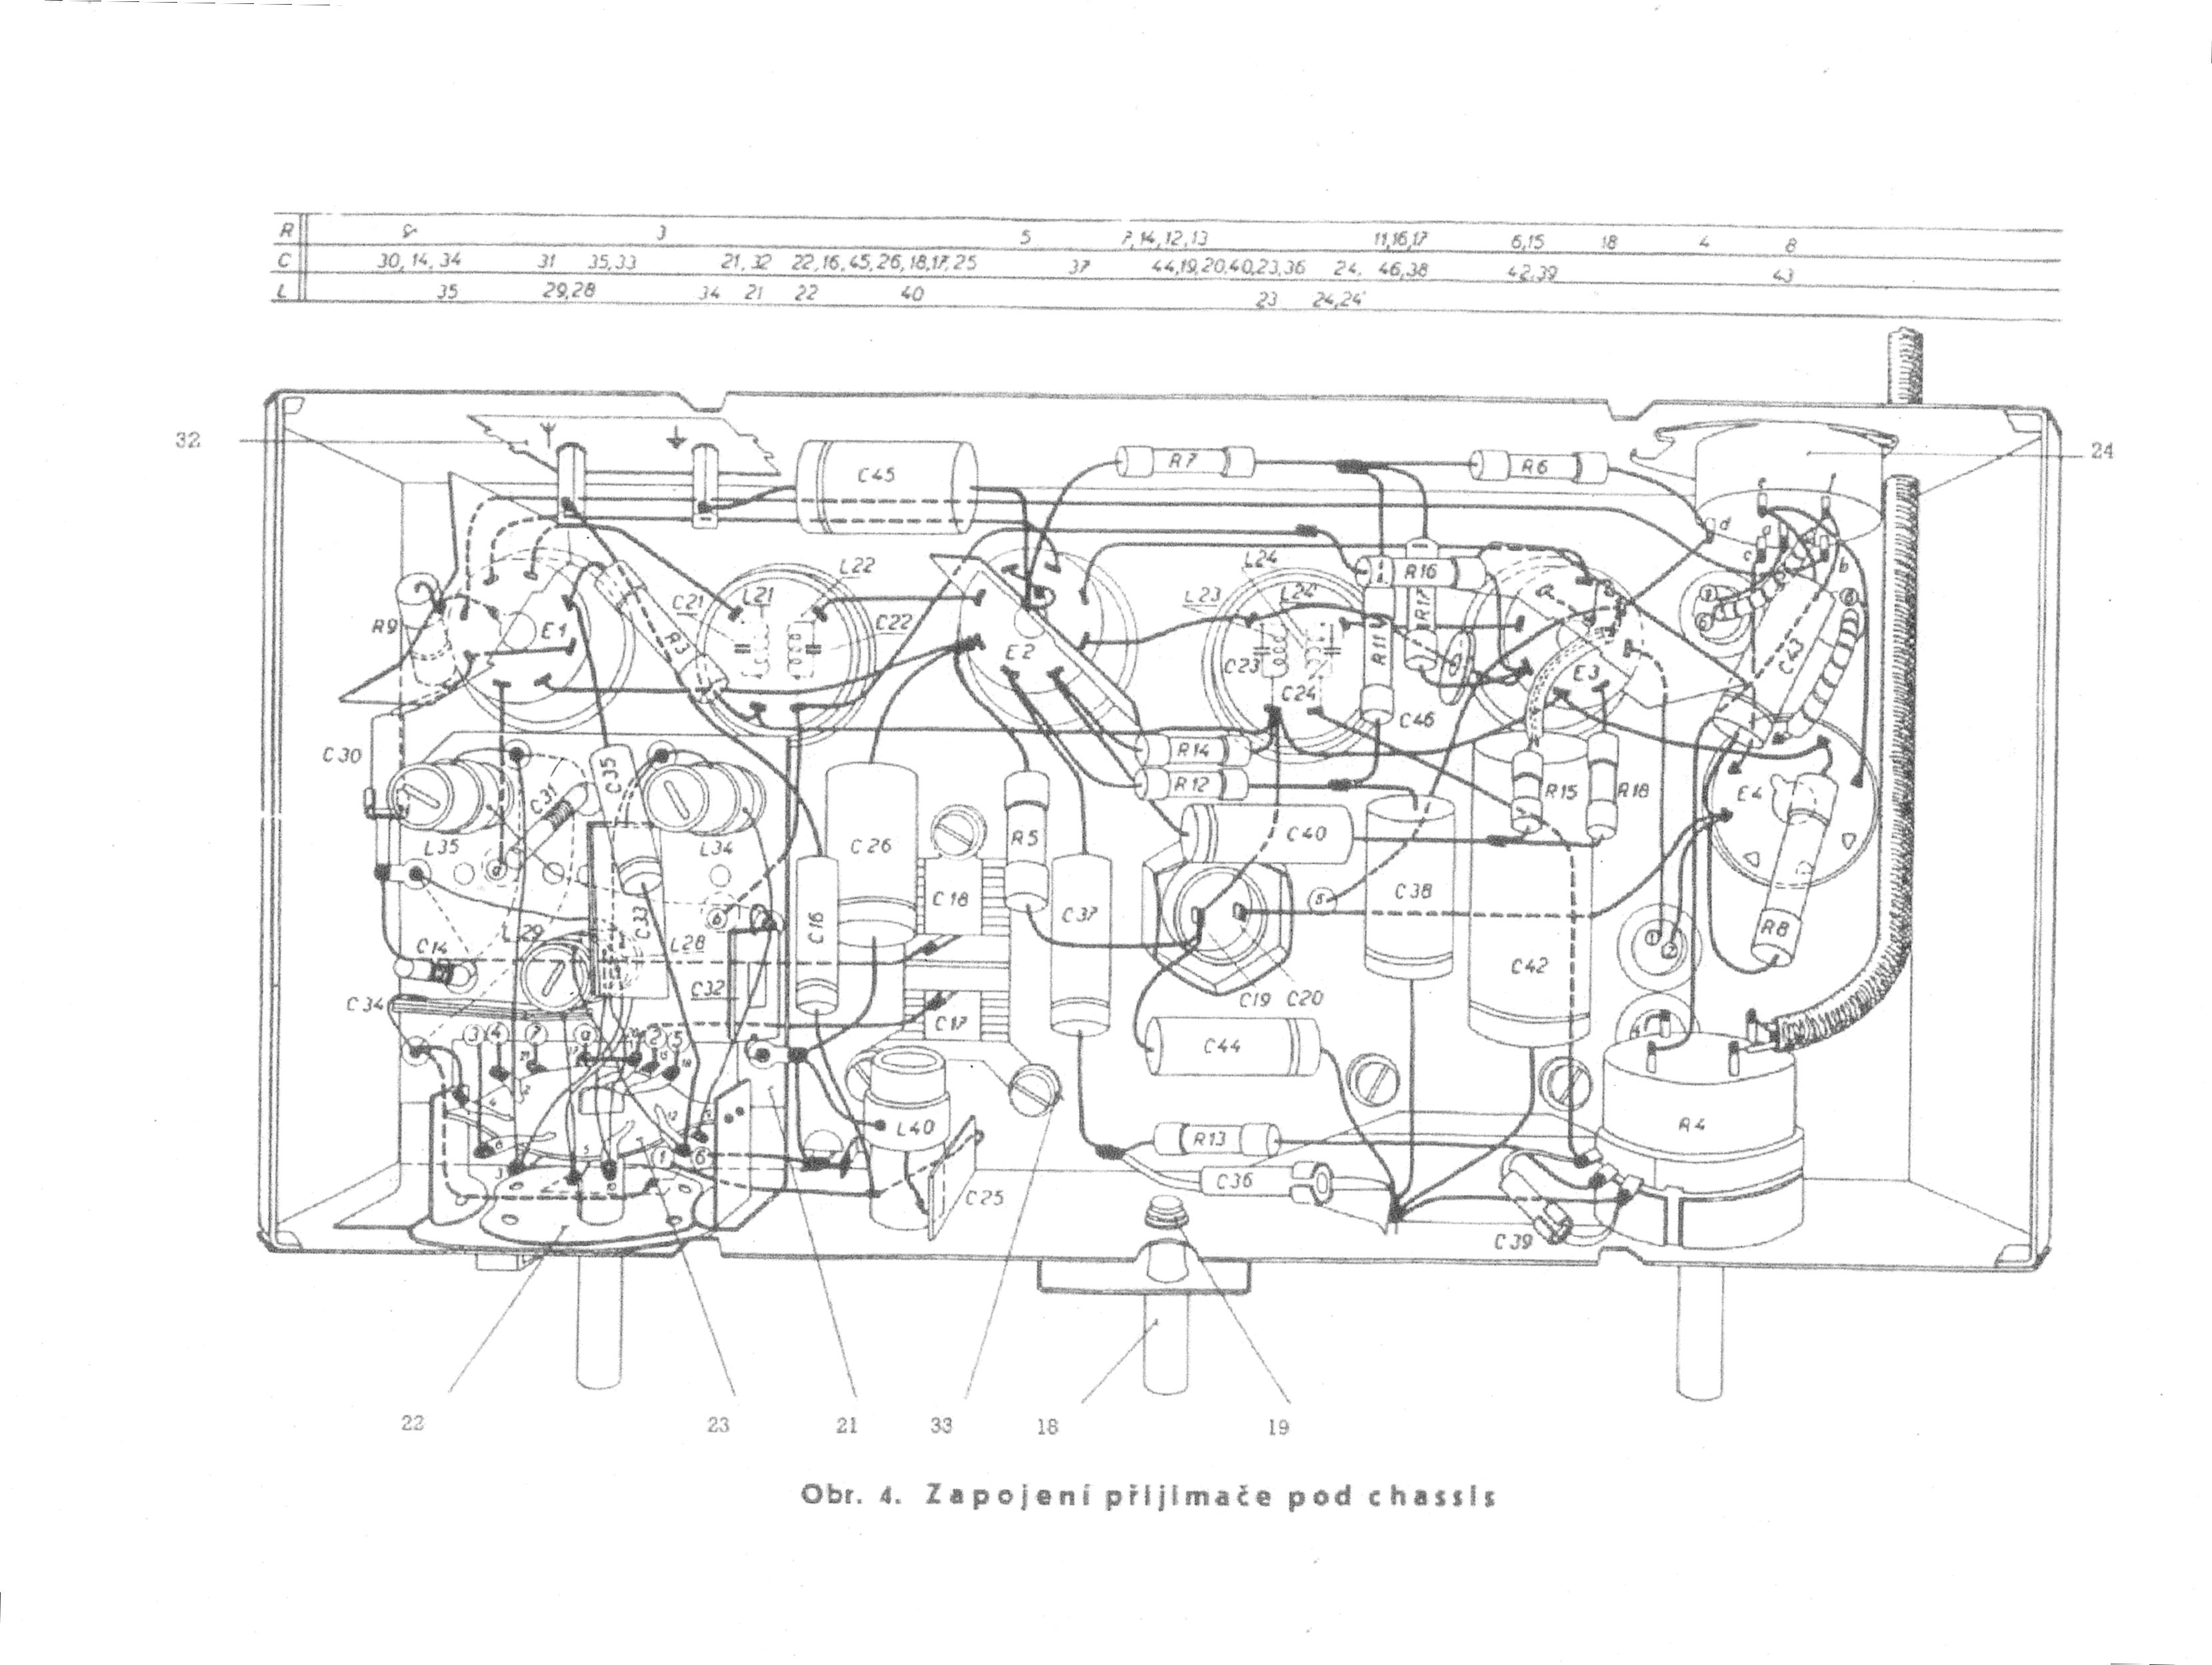 tesla model s wiring diagram wiring diagrams schematics rh alexanderblack co tesla model 3 wiring diagram Harley-Davidson Motorcycle Wiring Diagrams